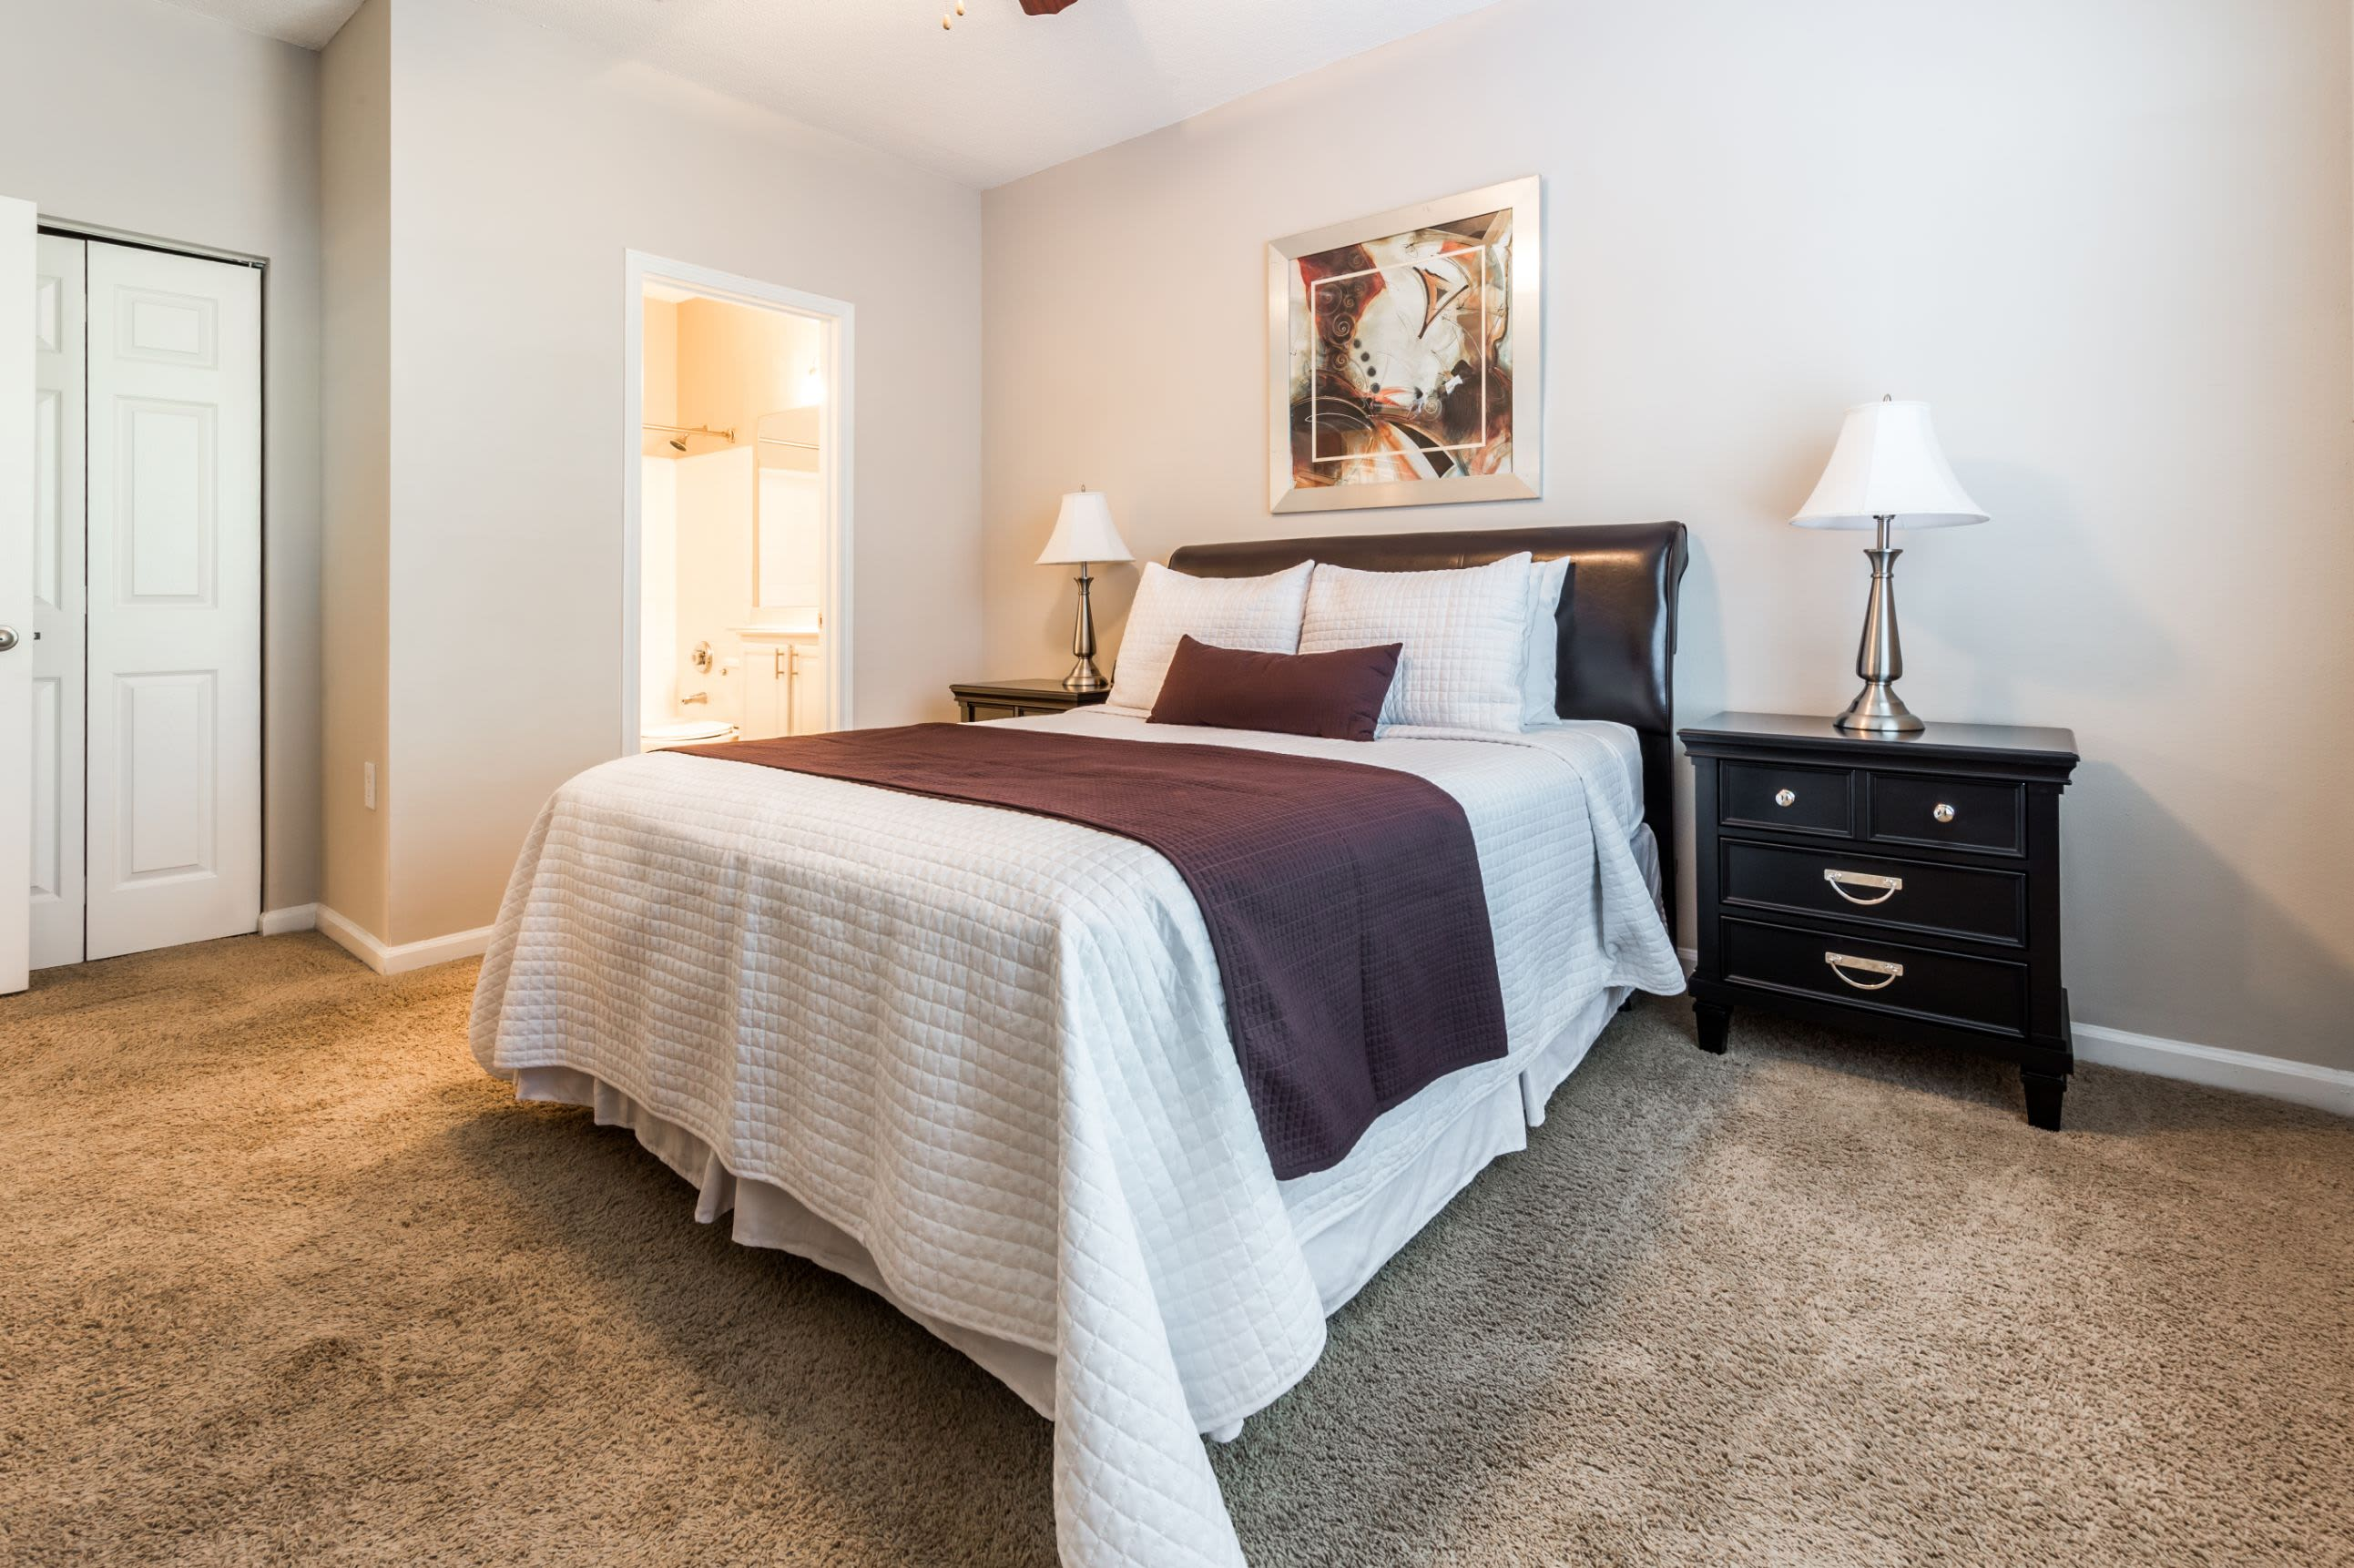 Bedroom with carpet flooring at The Preserve at Ballantyne Commons in Charlotte, North Carolina